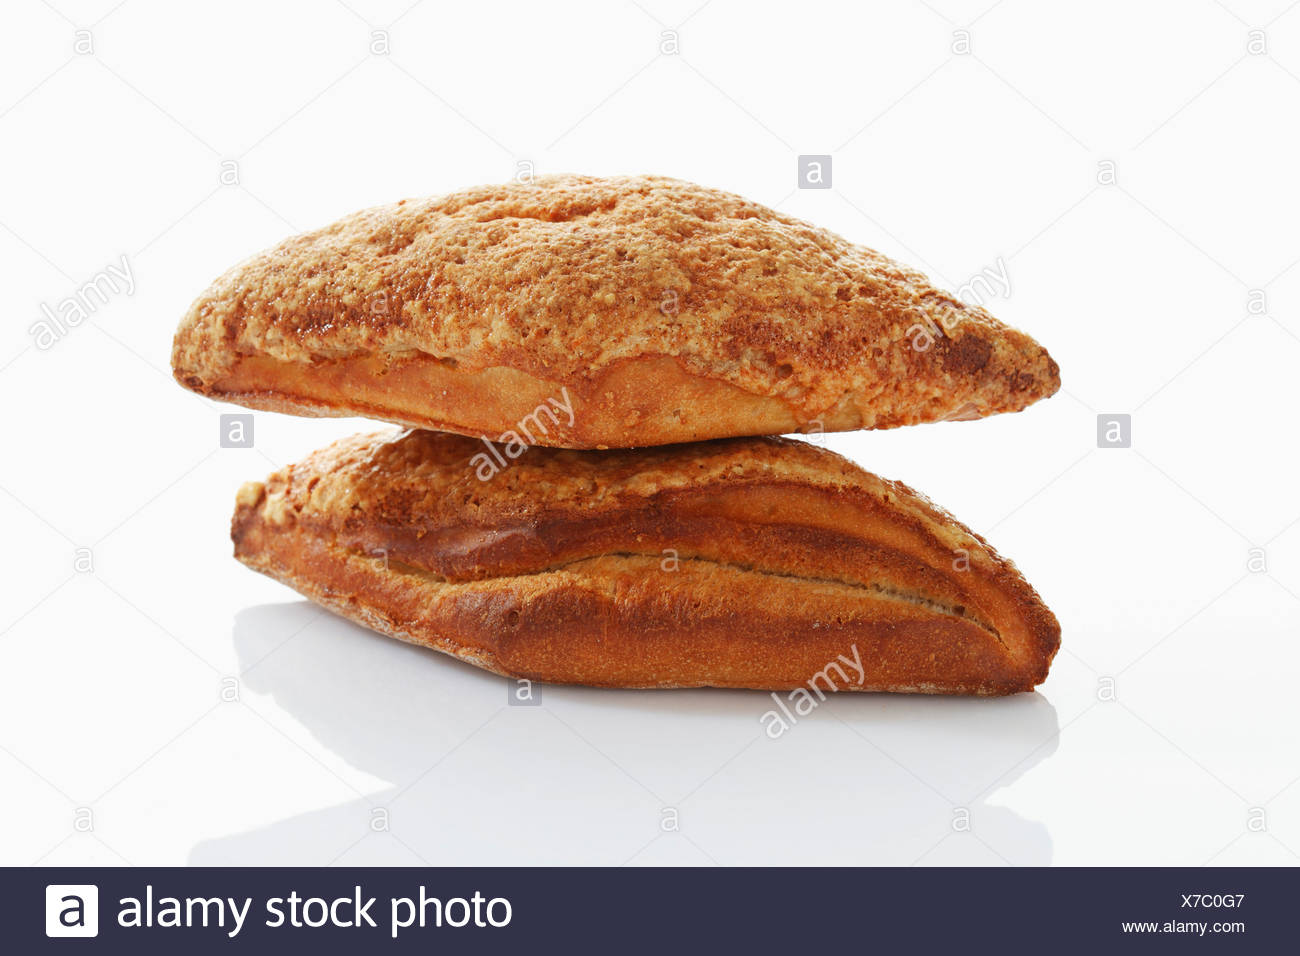 Gouda cheese bread on white background, close up - Stock Image